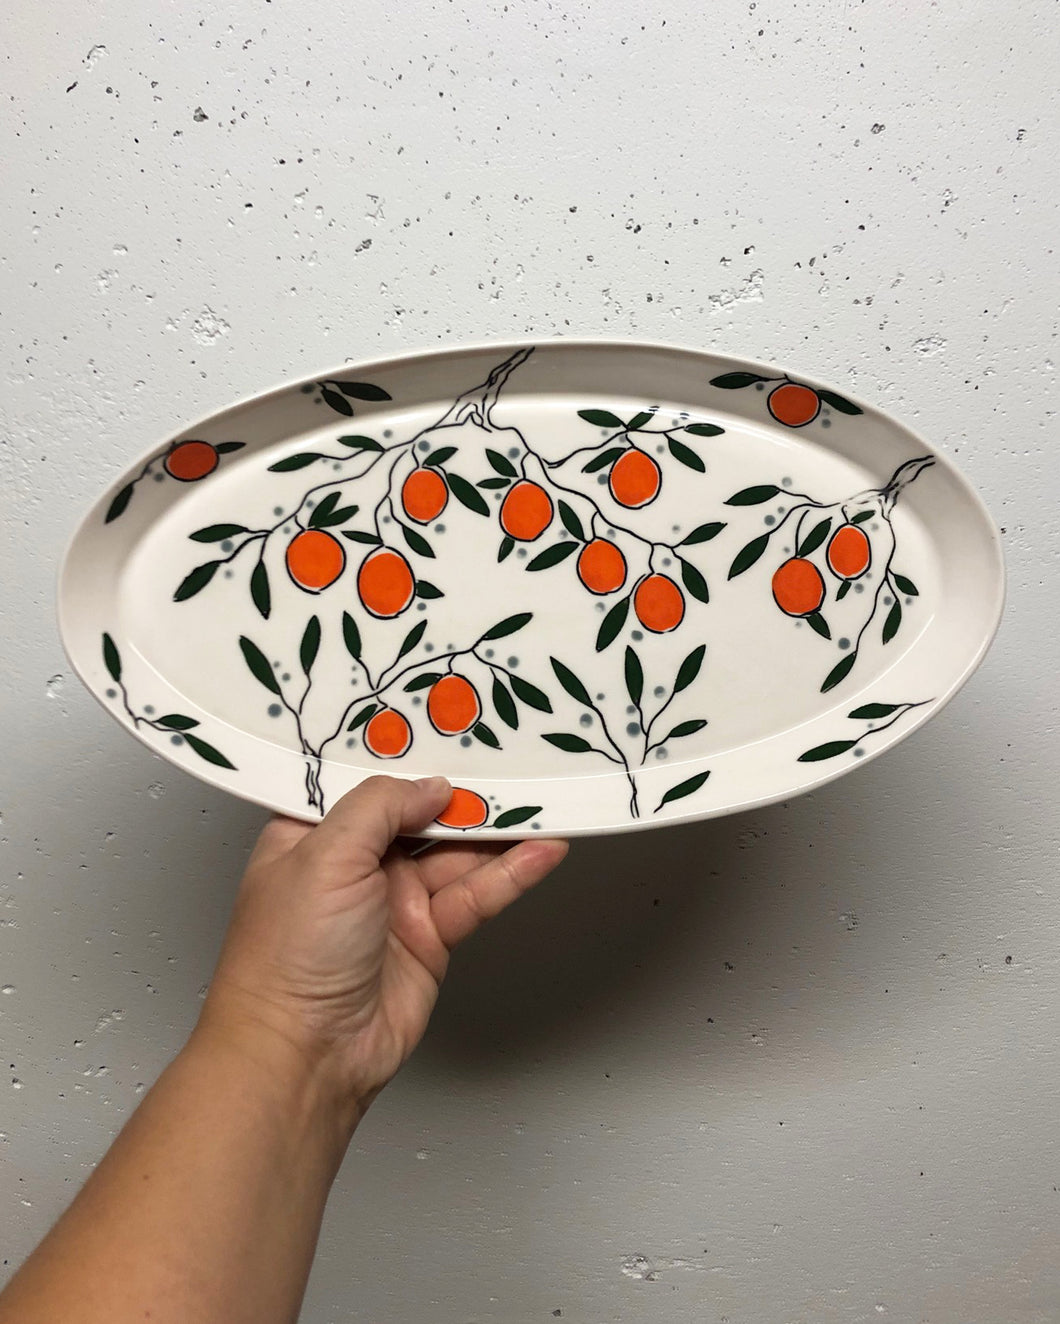 Oval platter or tray (large) - orange design on porcelain